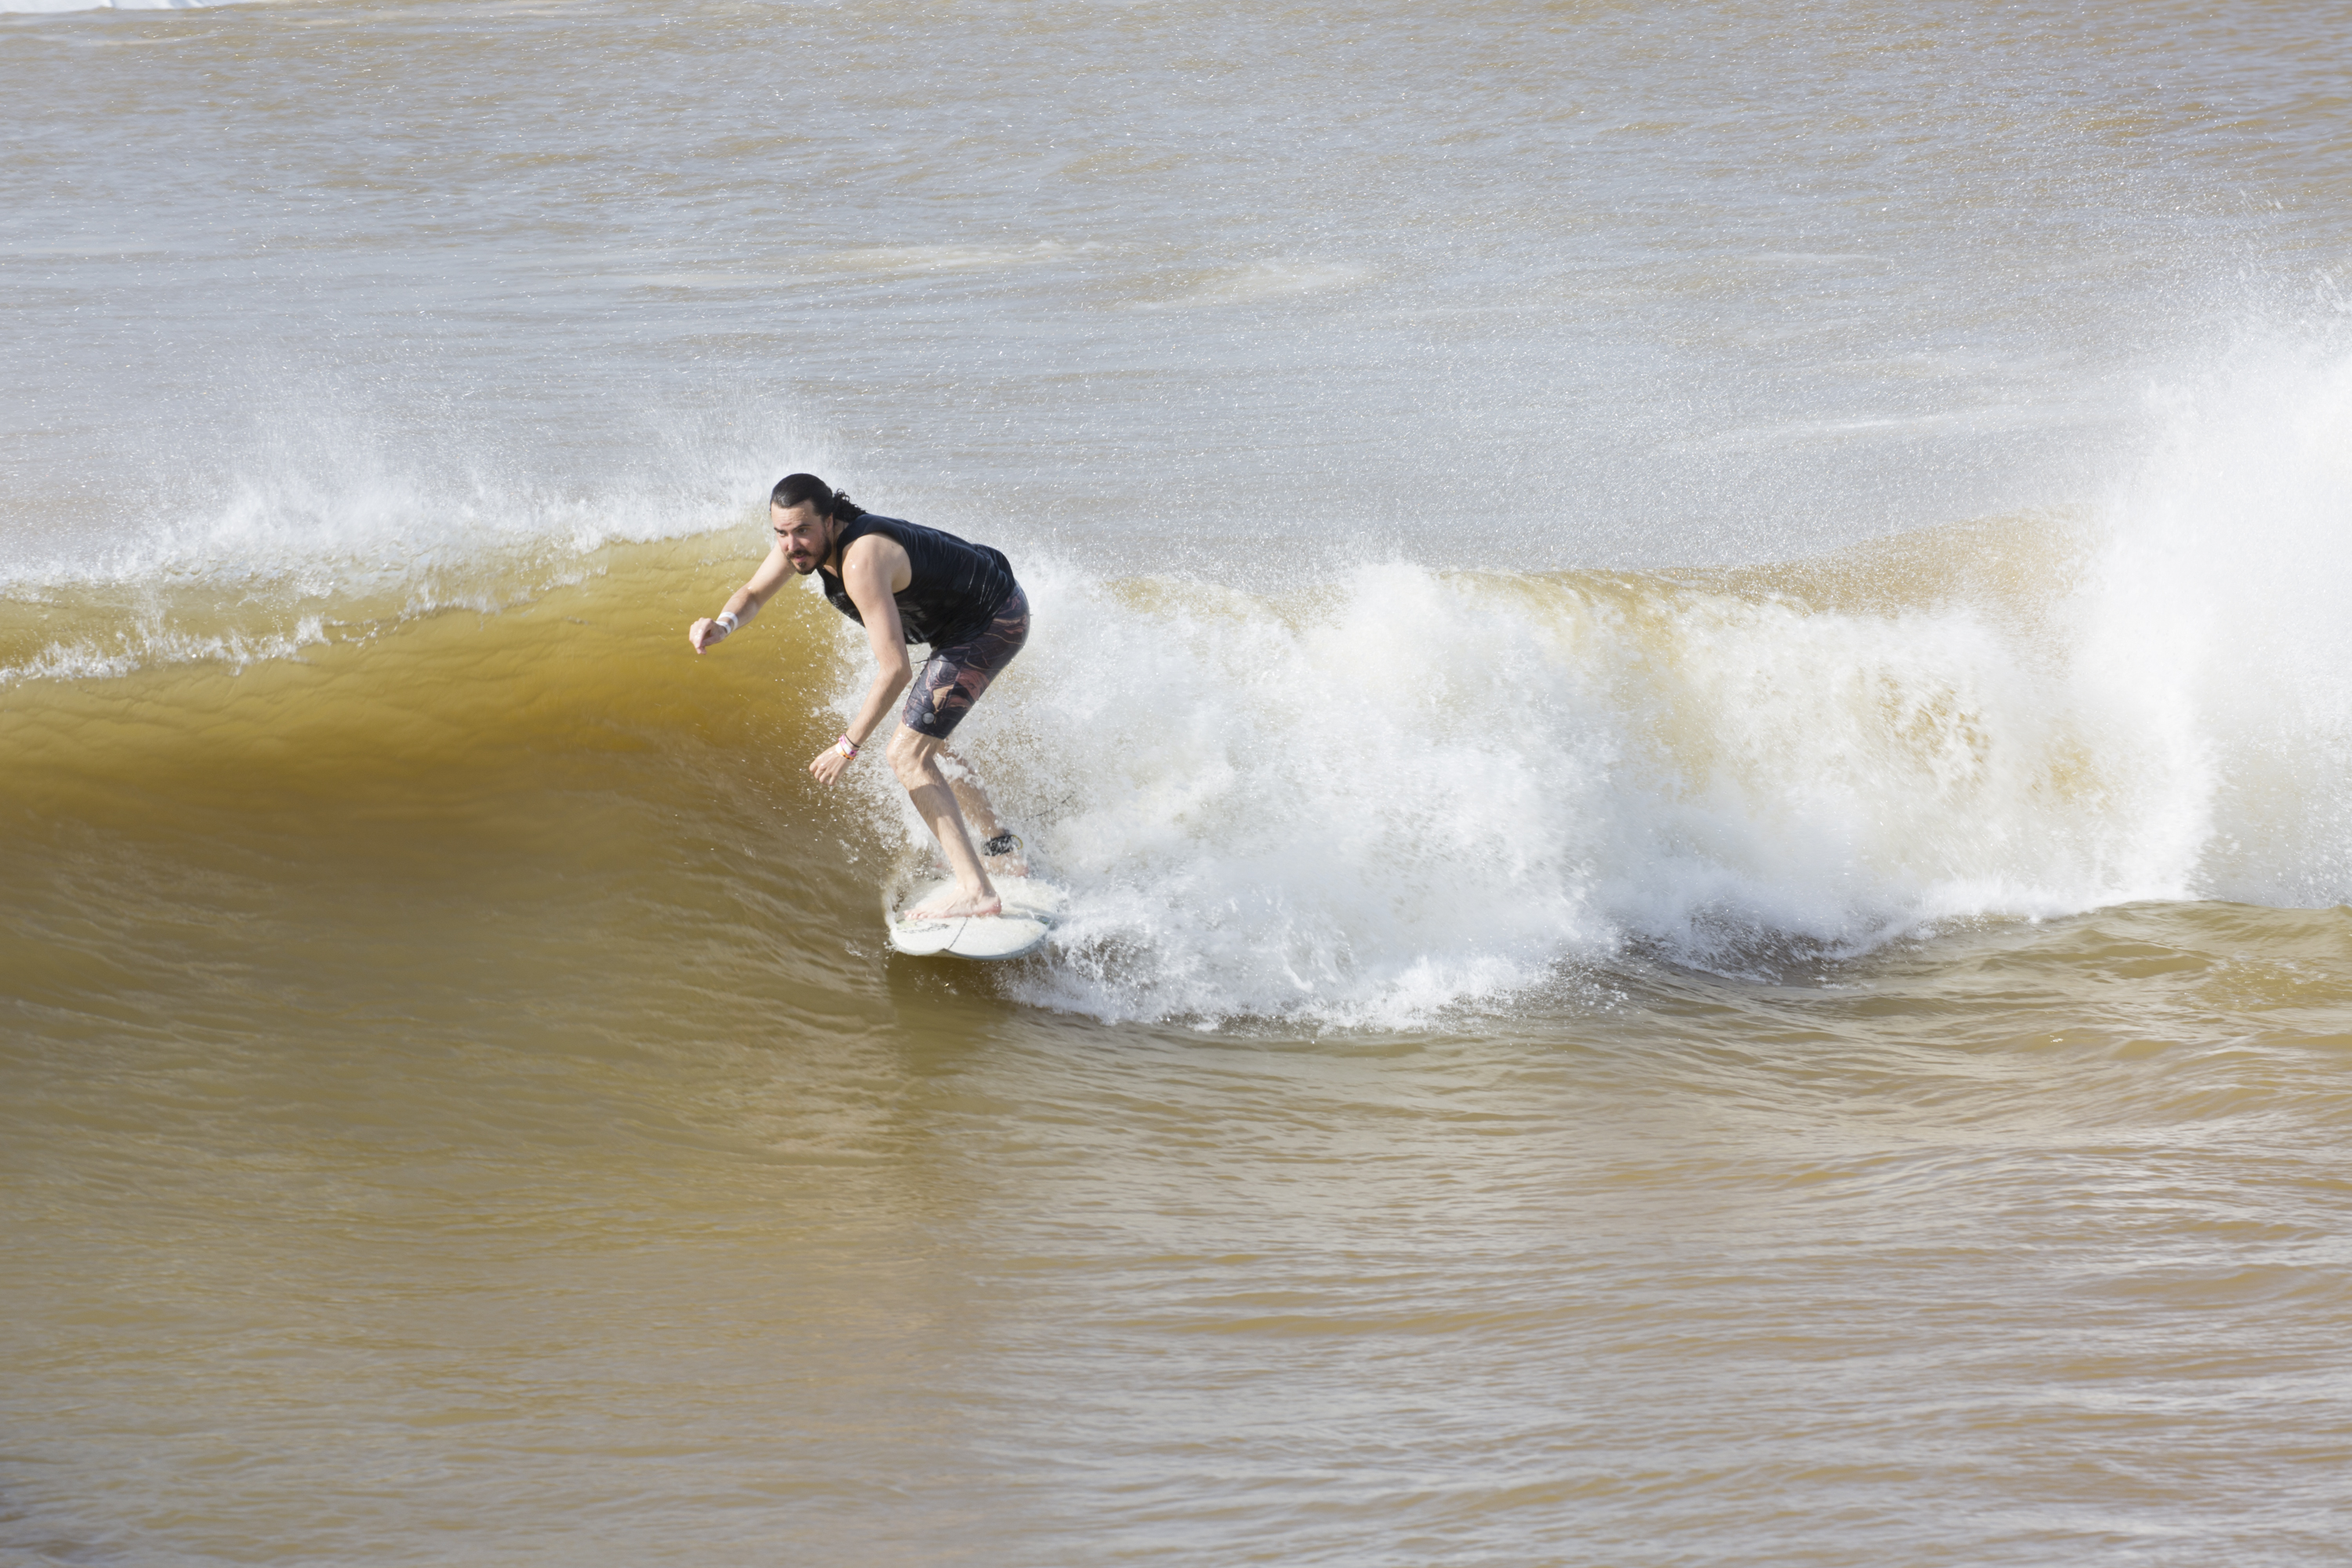 motherboard.vice.com - I Surfed a Perfect Man-Made Wave in the Heart of Texas